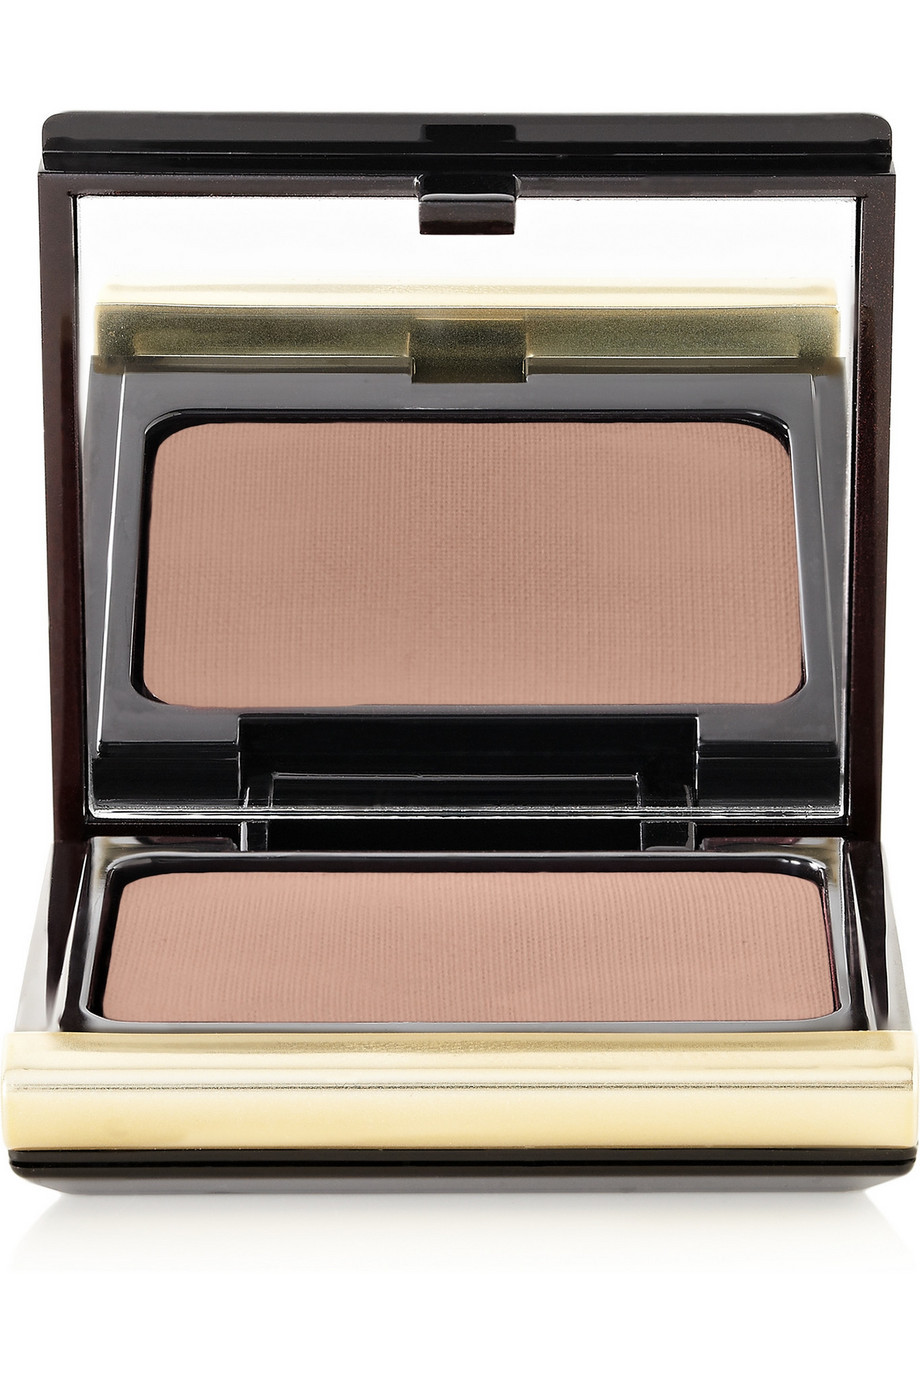 The Matte Eye Shadow Single - Soft Clay No. 104, by Kevyn Aucoin